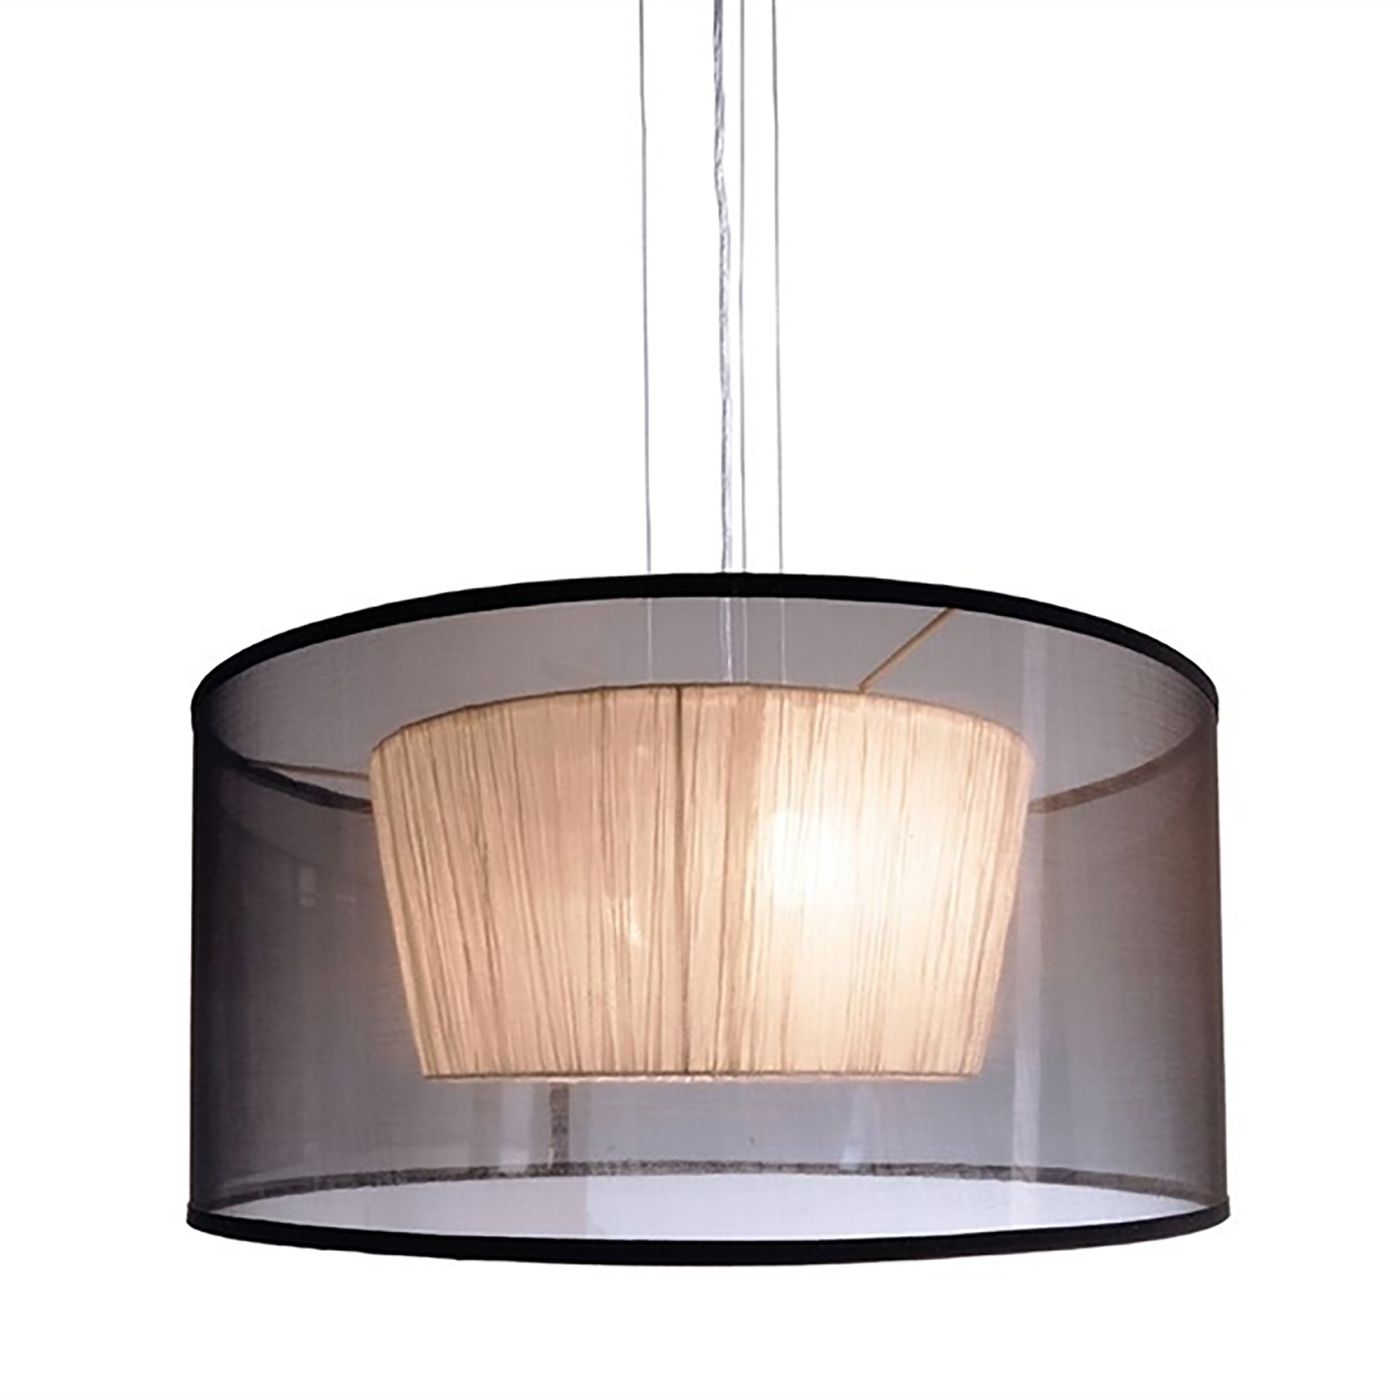 Modern chandelier suspension pendant lamp led fabric 4 attacks E27 220V